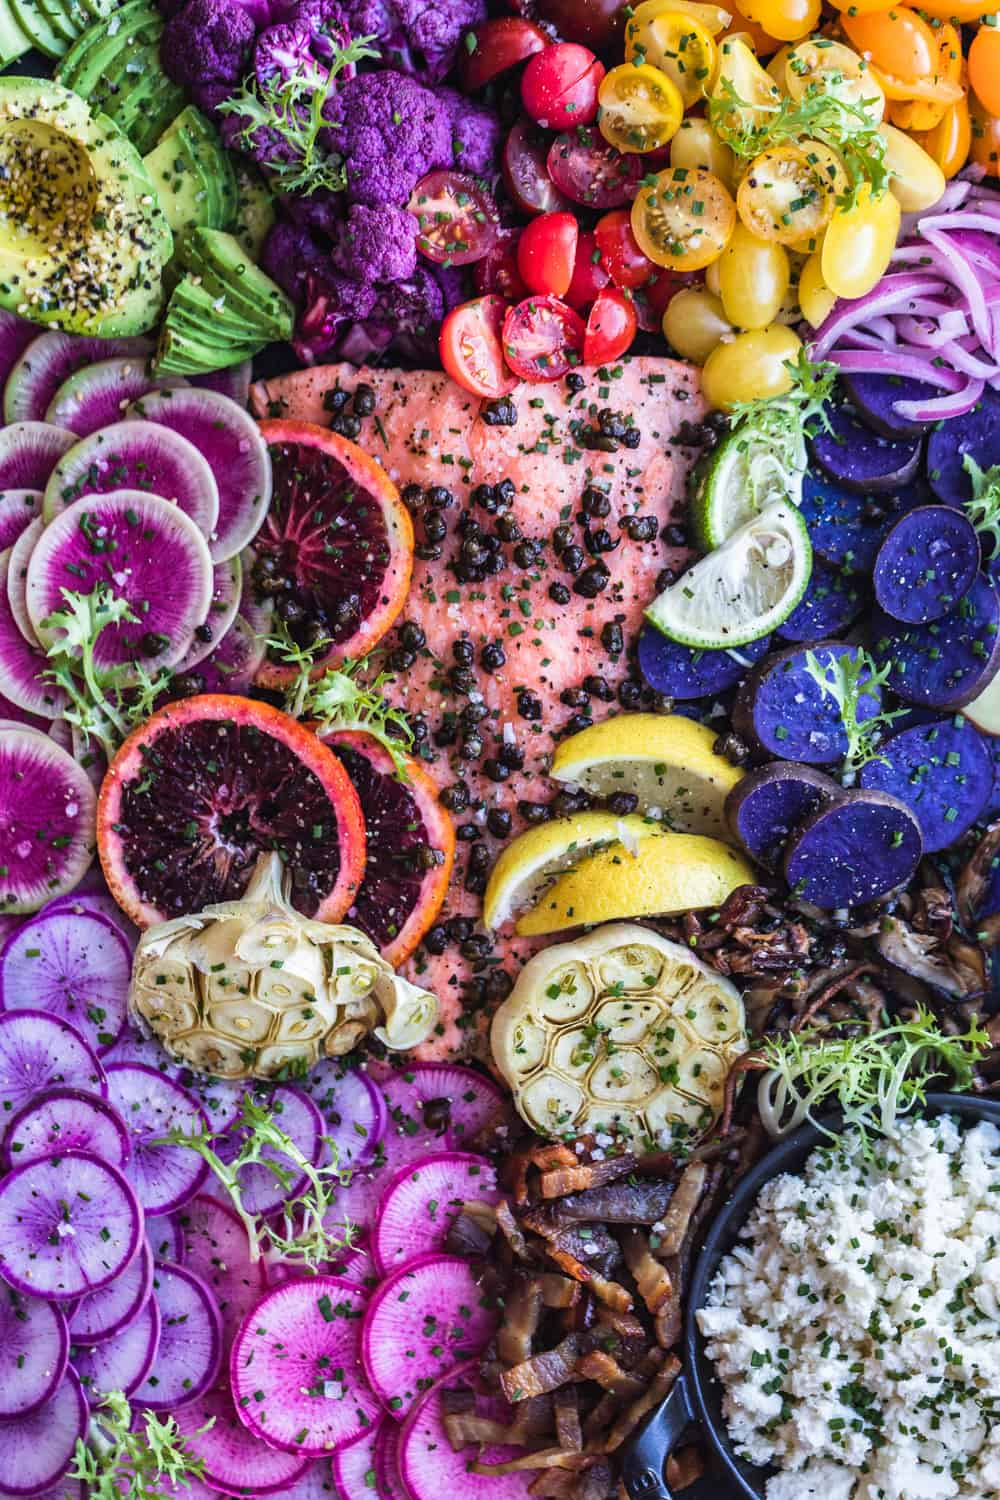 Salmon Rainbow Party Salad Board with avocado, purple cauliflower, tomatoes, red onions, purple patties, pink and purple radishes, bacon, cheese, garlic, blood orange and watermelon radishes. Up close.